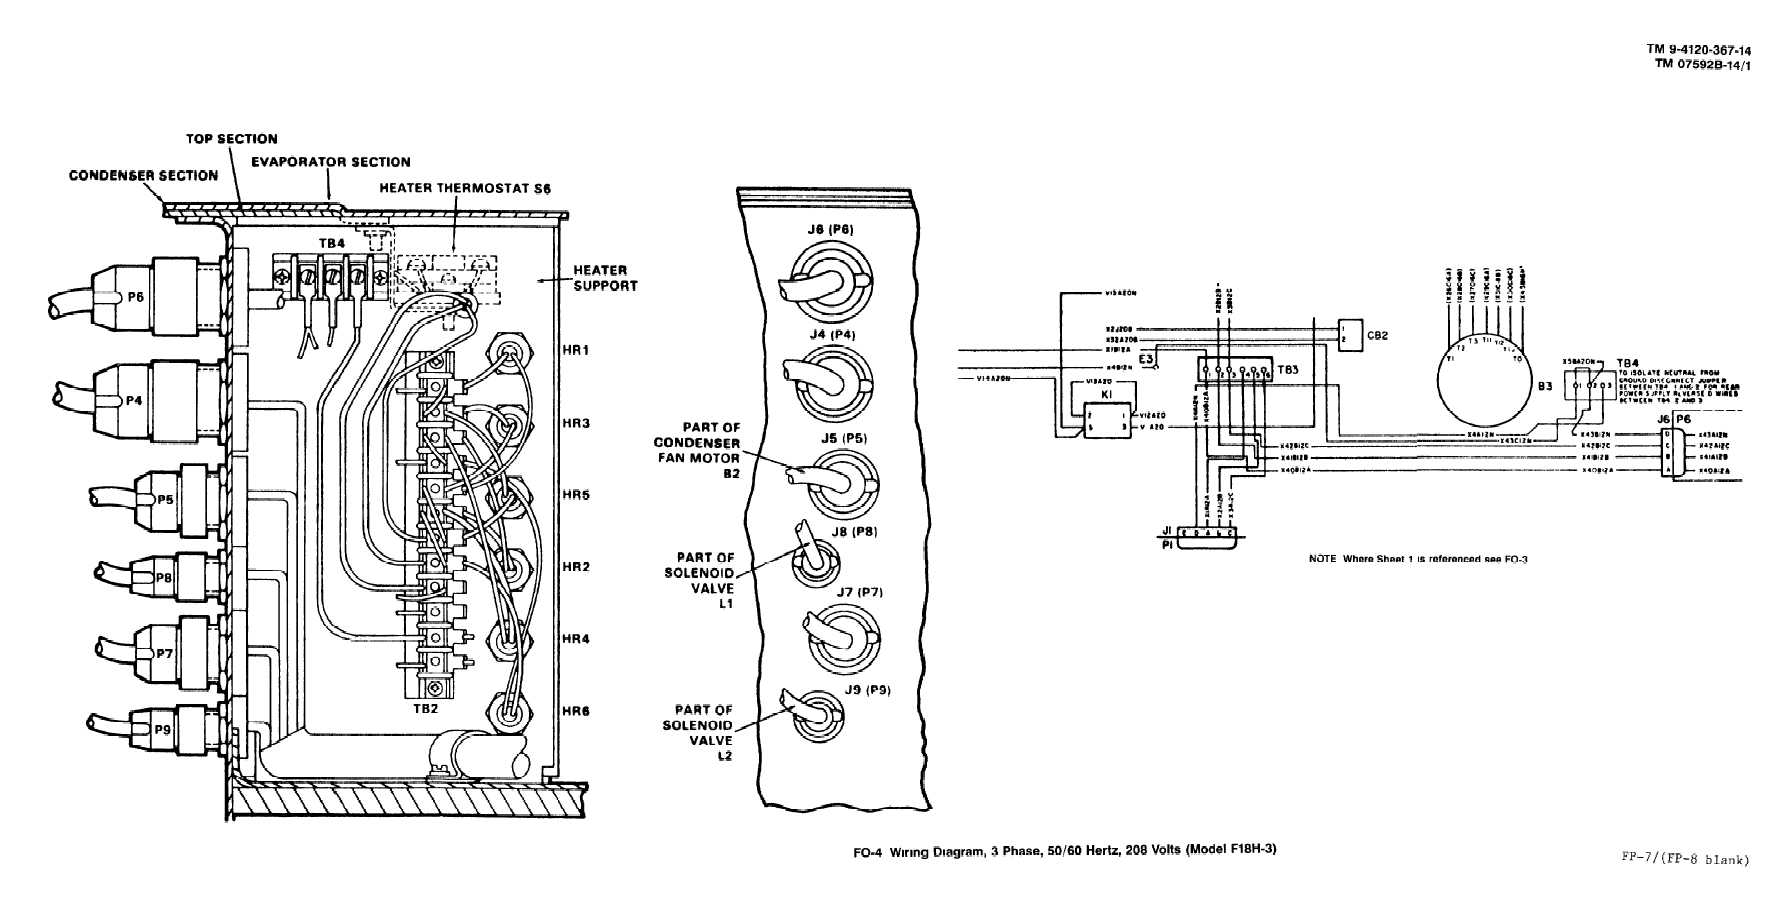 460 volt 3 phase wiring diagram 480v to 240 120v transformer get free image about